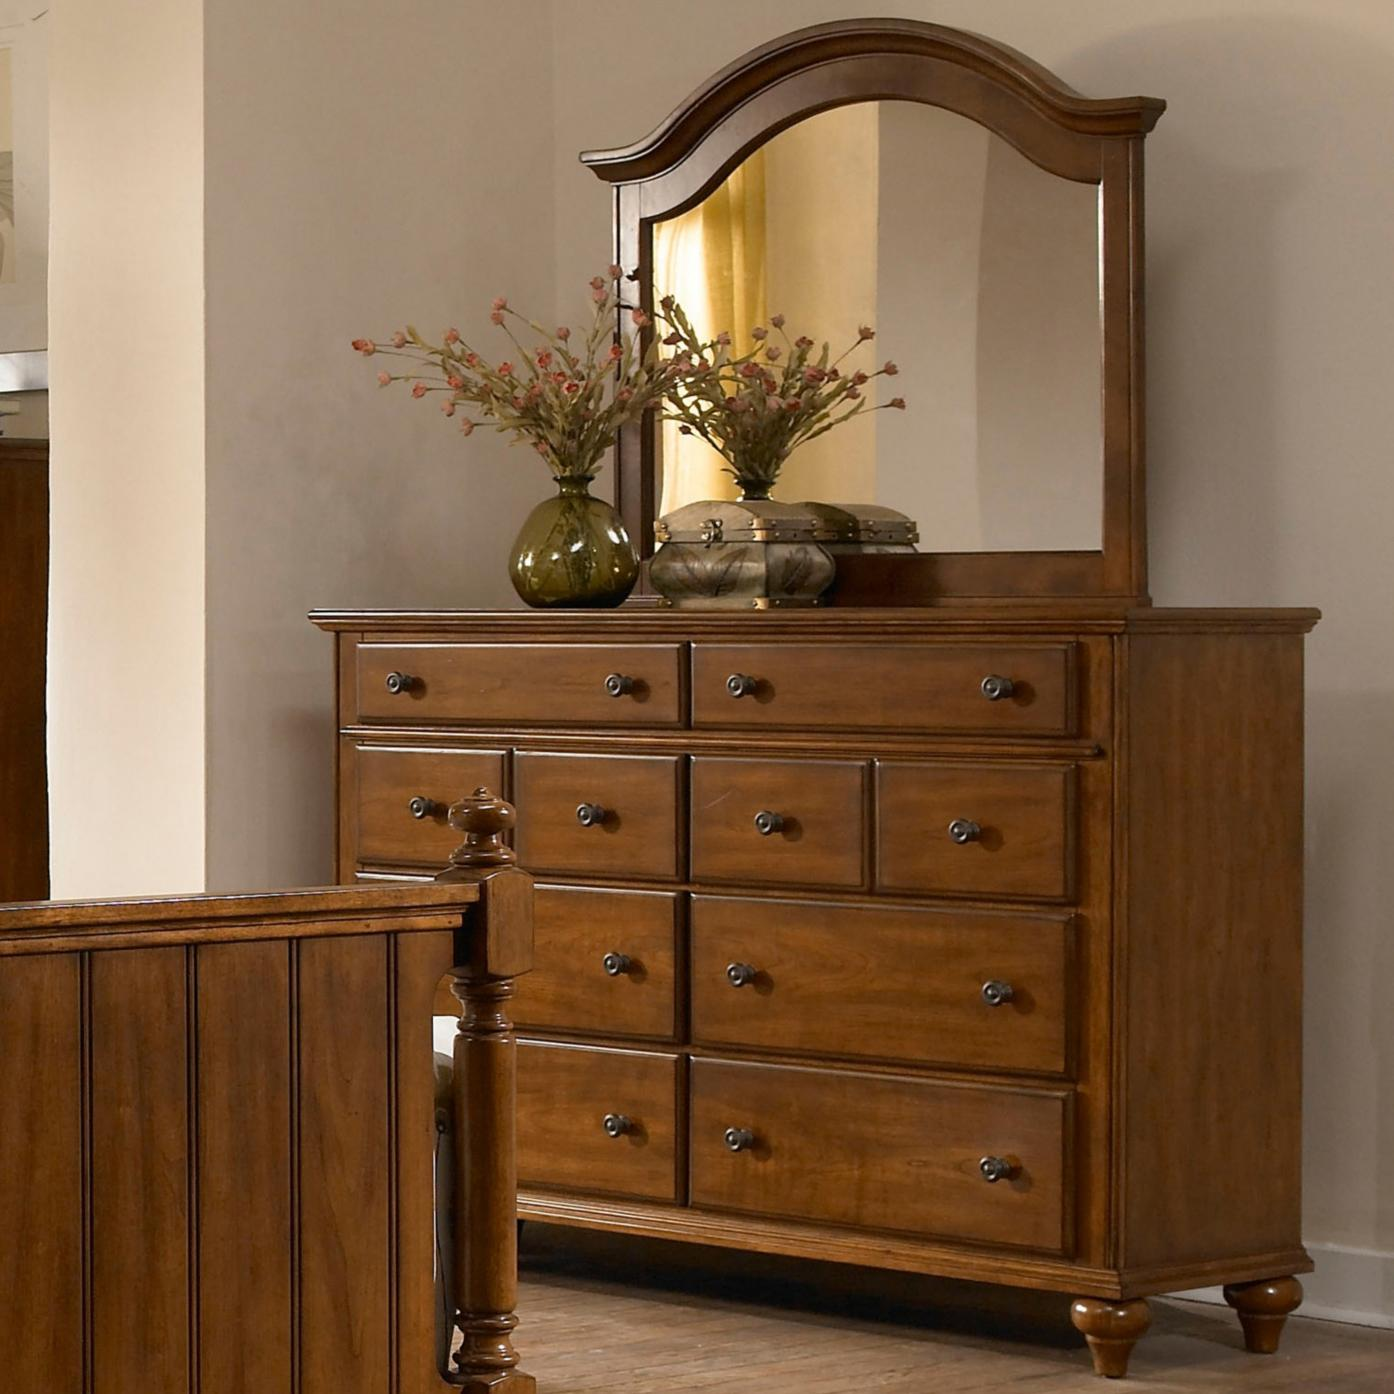 Broyhill Furniture Hayden Place Drawer Dress and Arched Mirror - Item Number: 4648-230+237